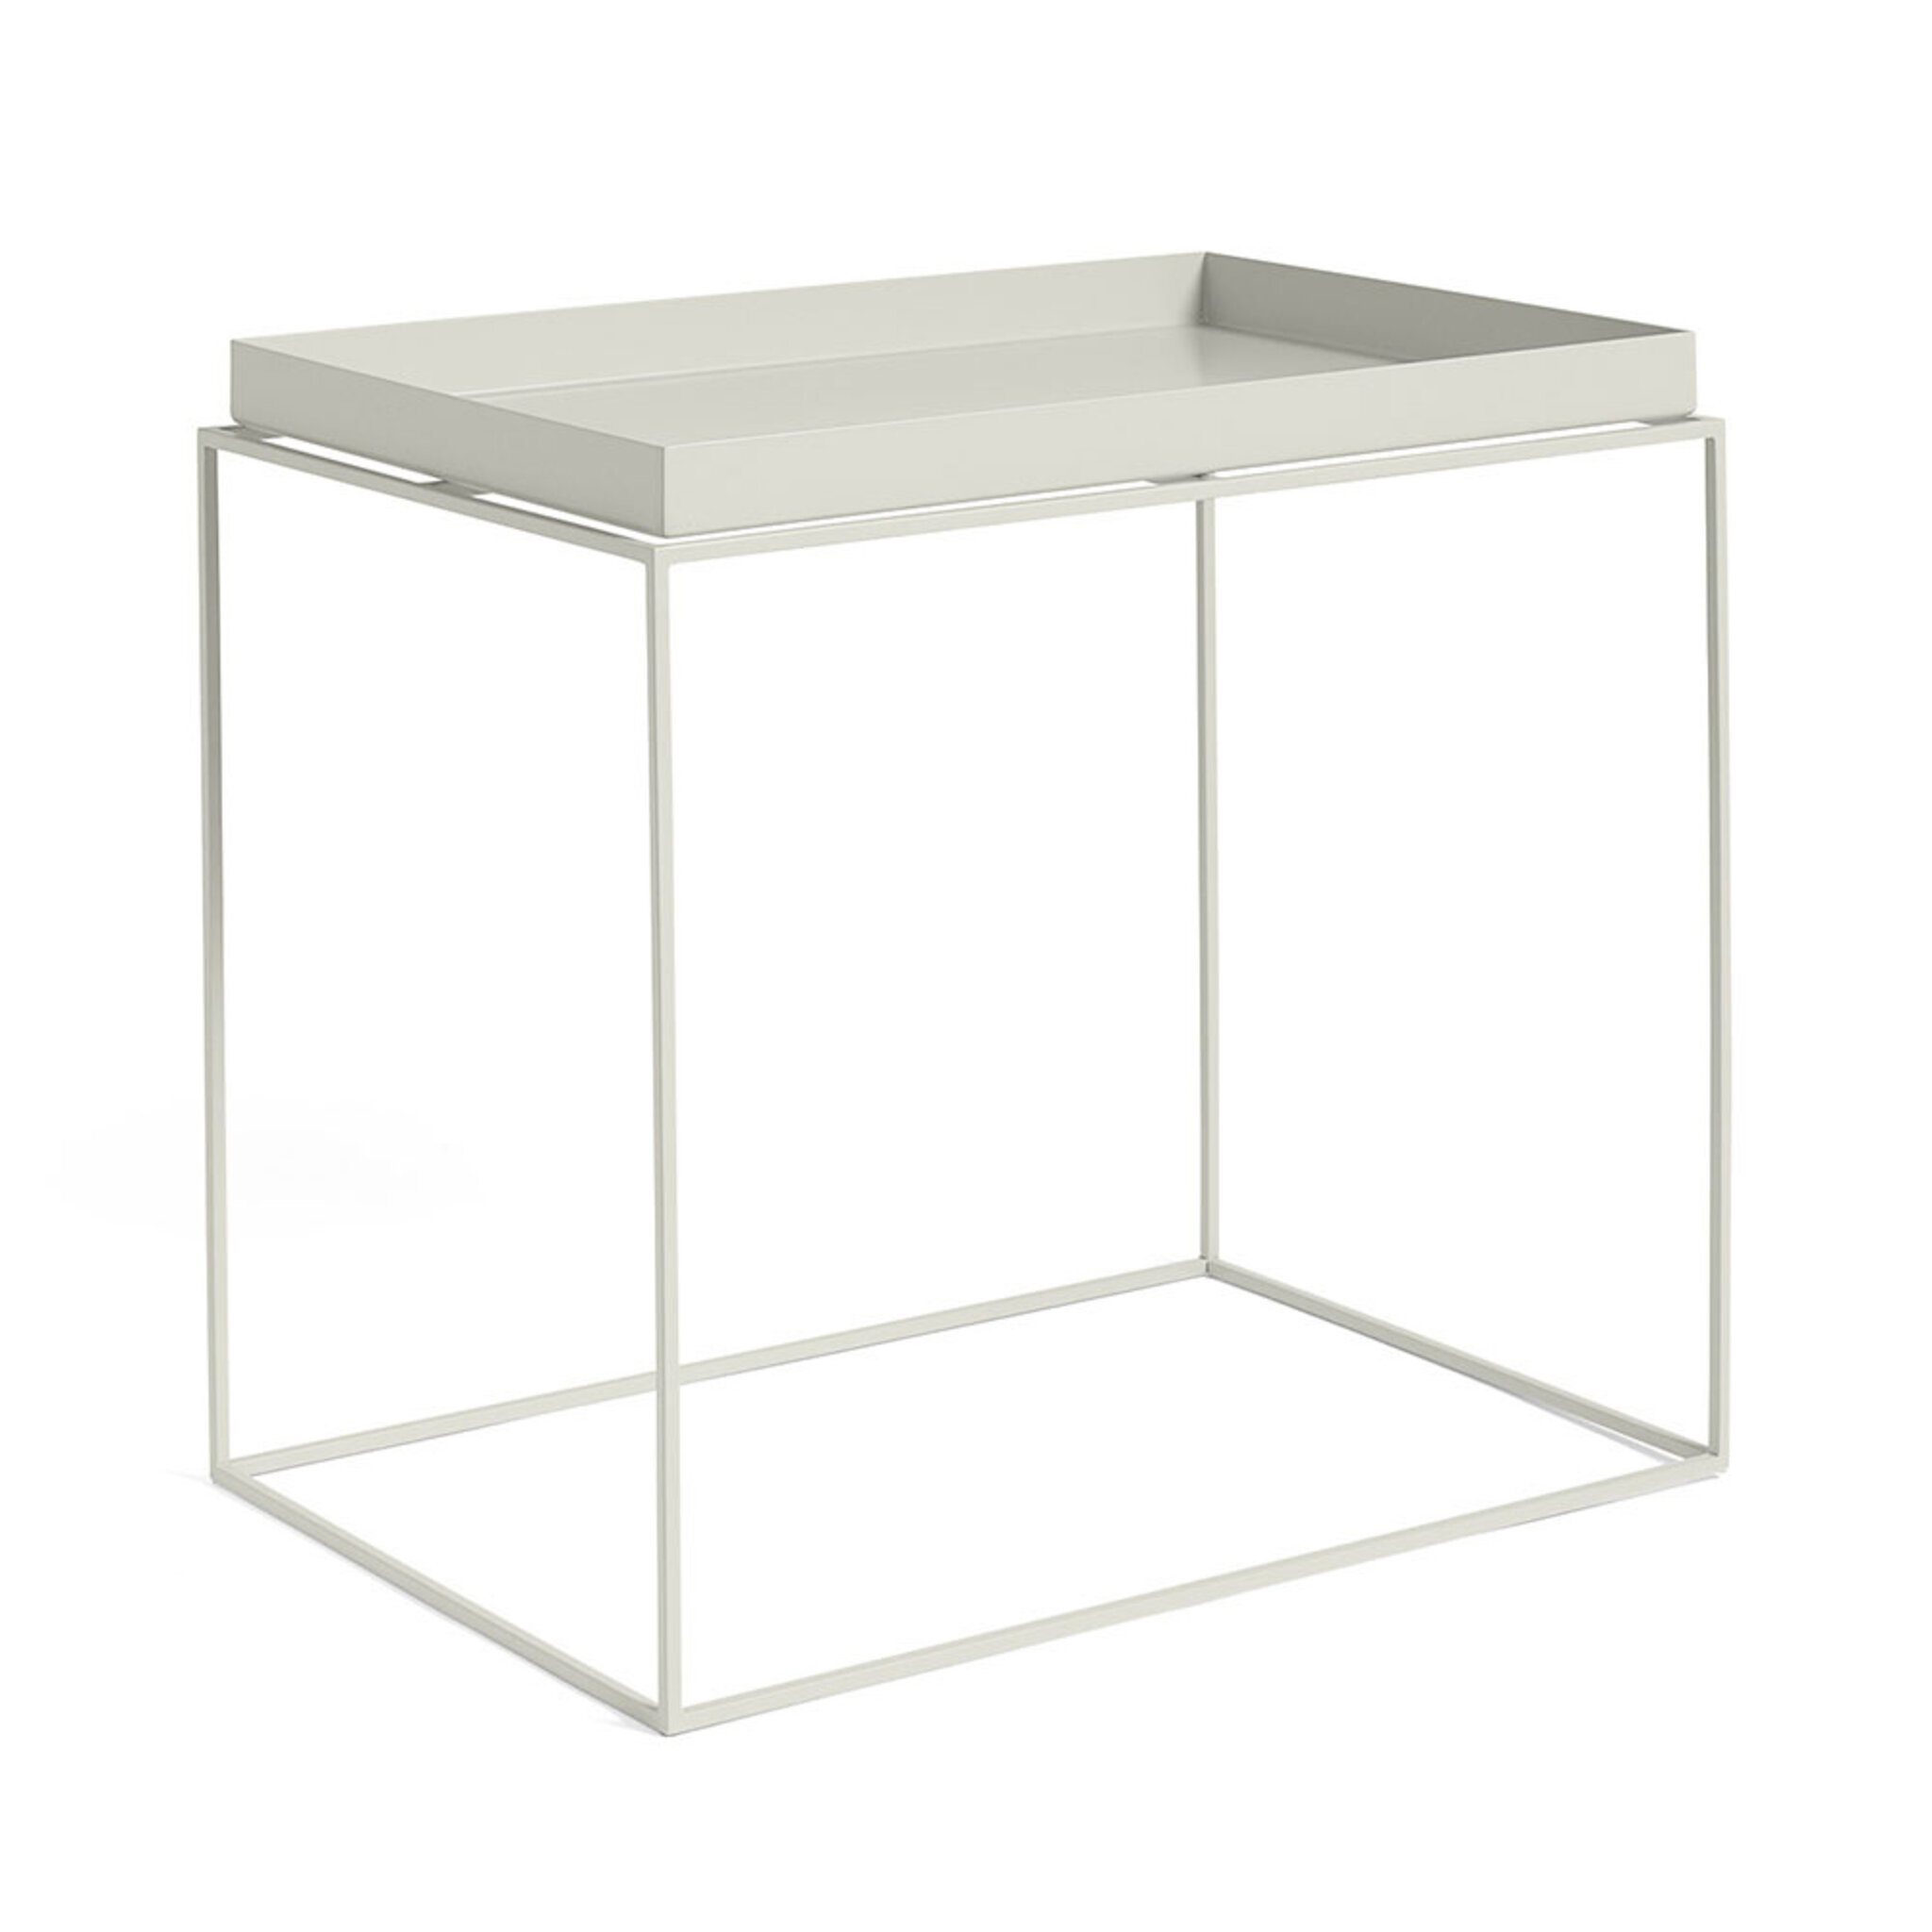 Tray Table Side 40×60 cm